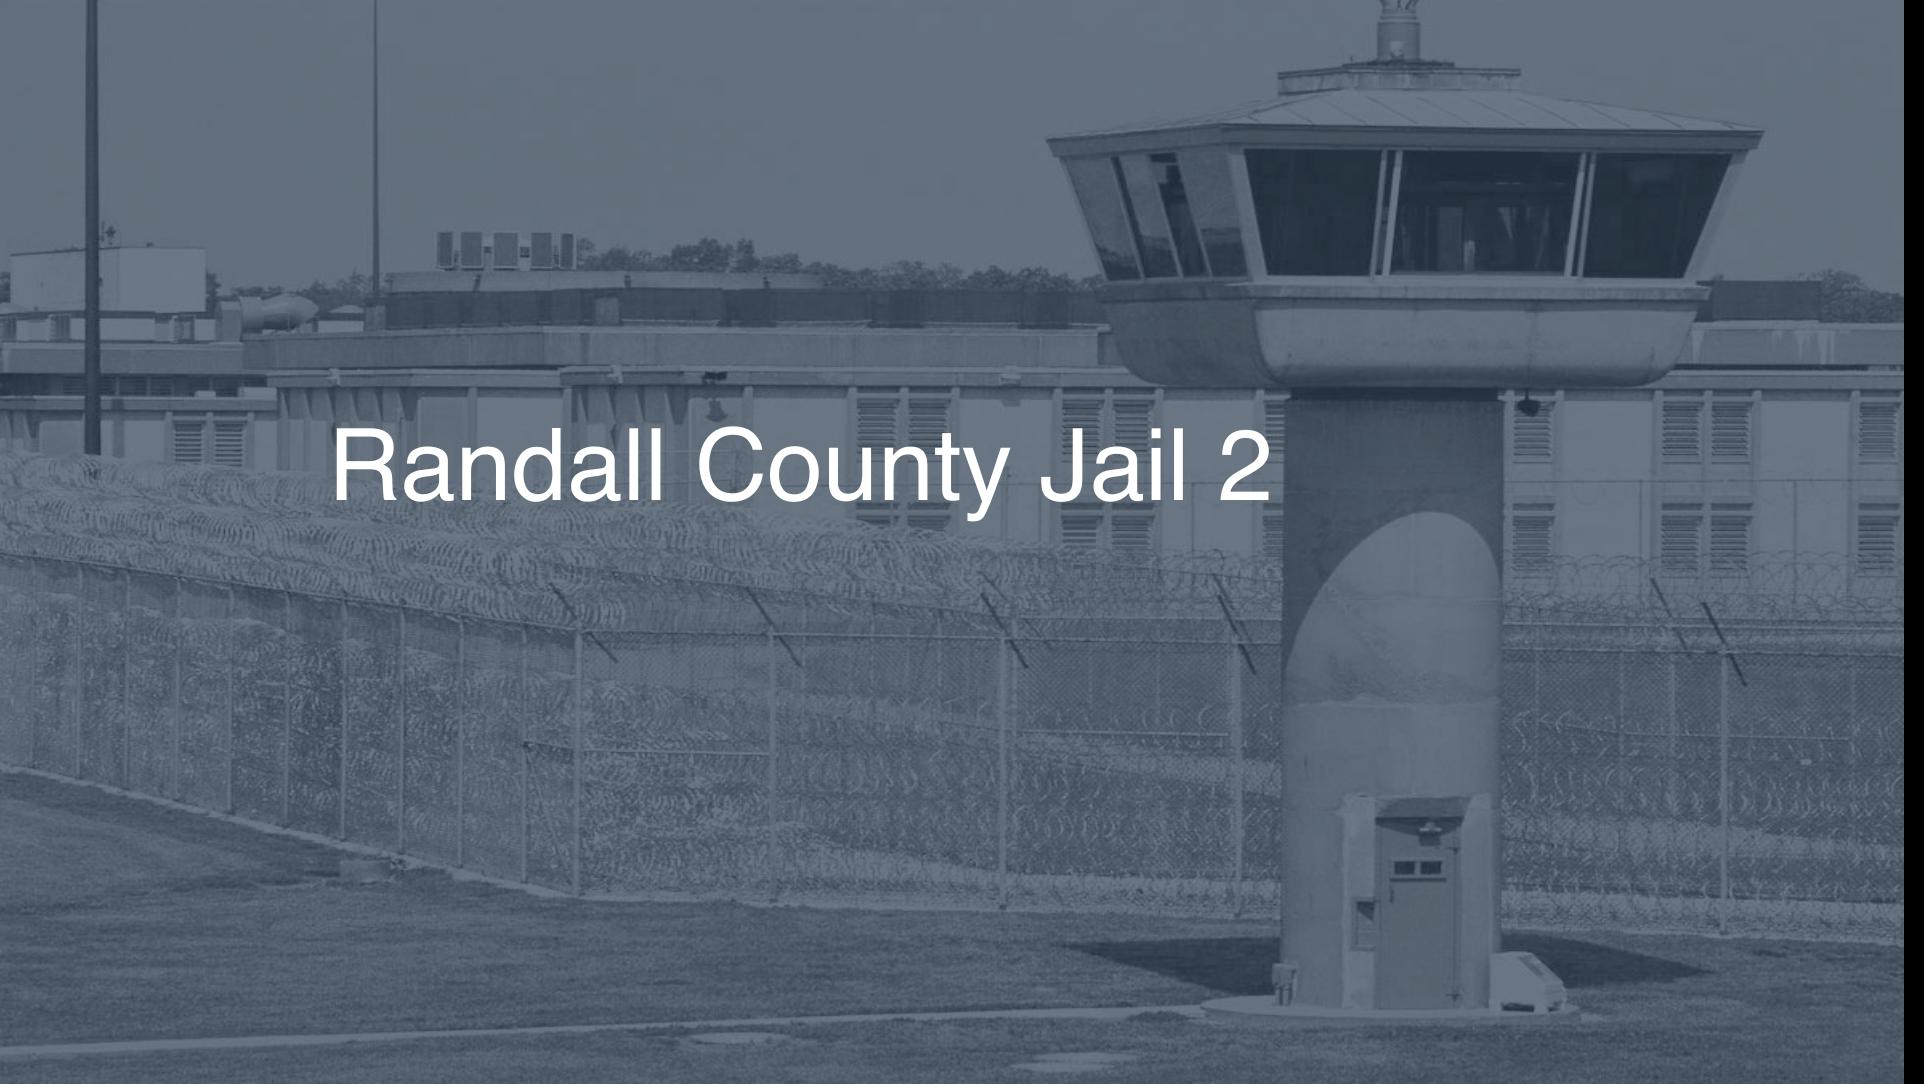 Randall County Jail correctional facility picture